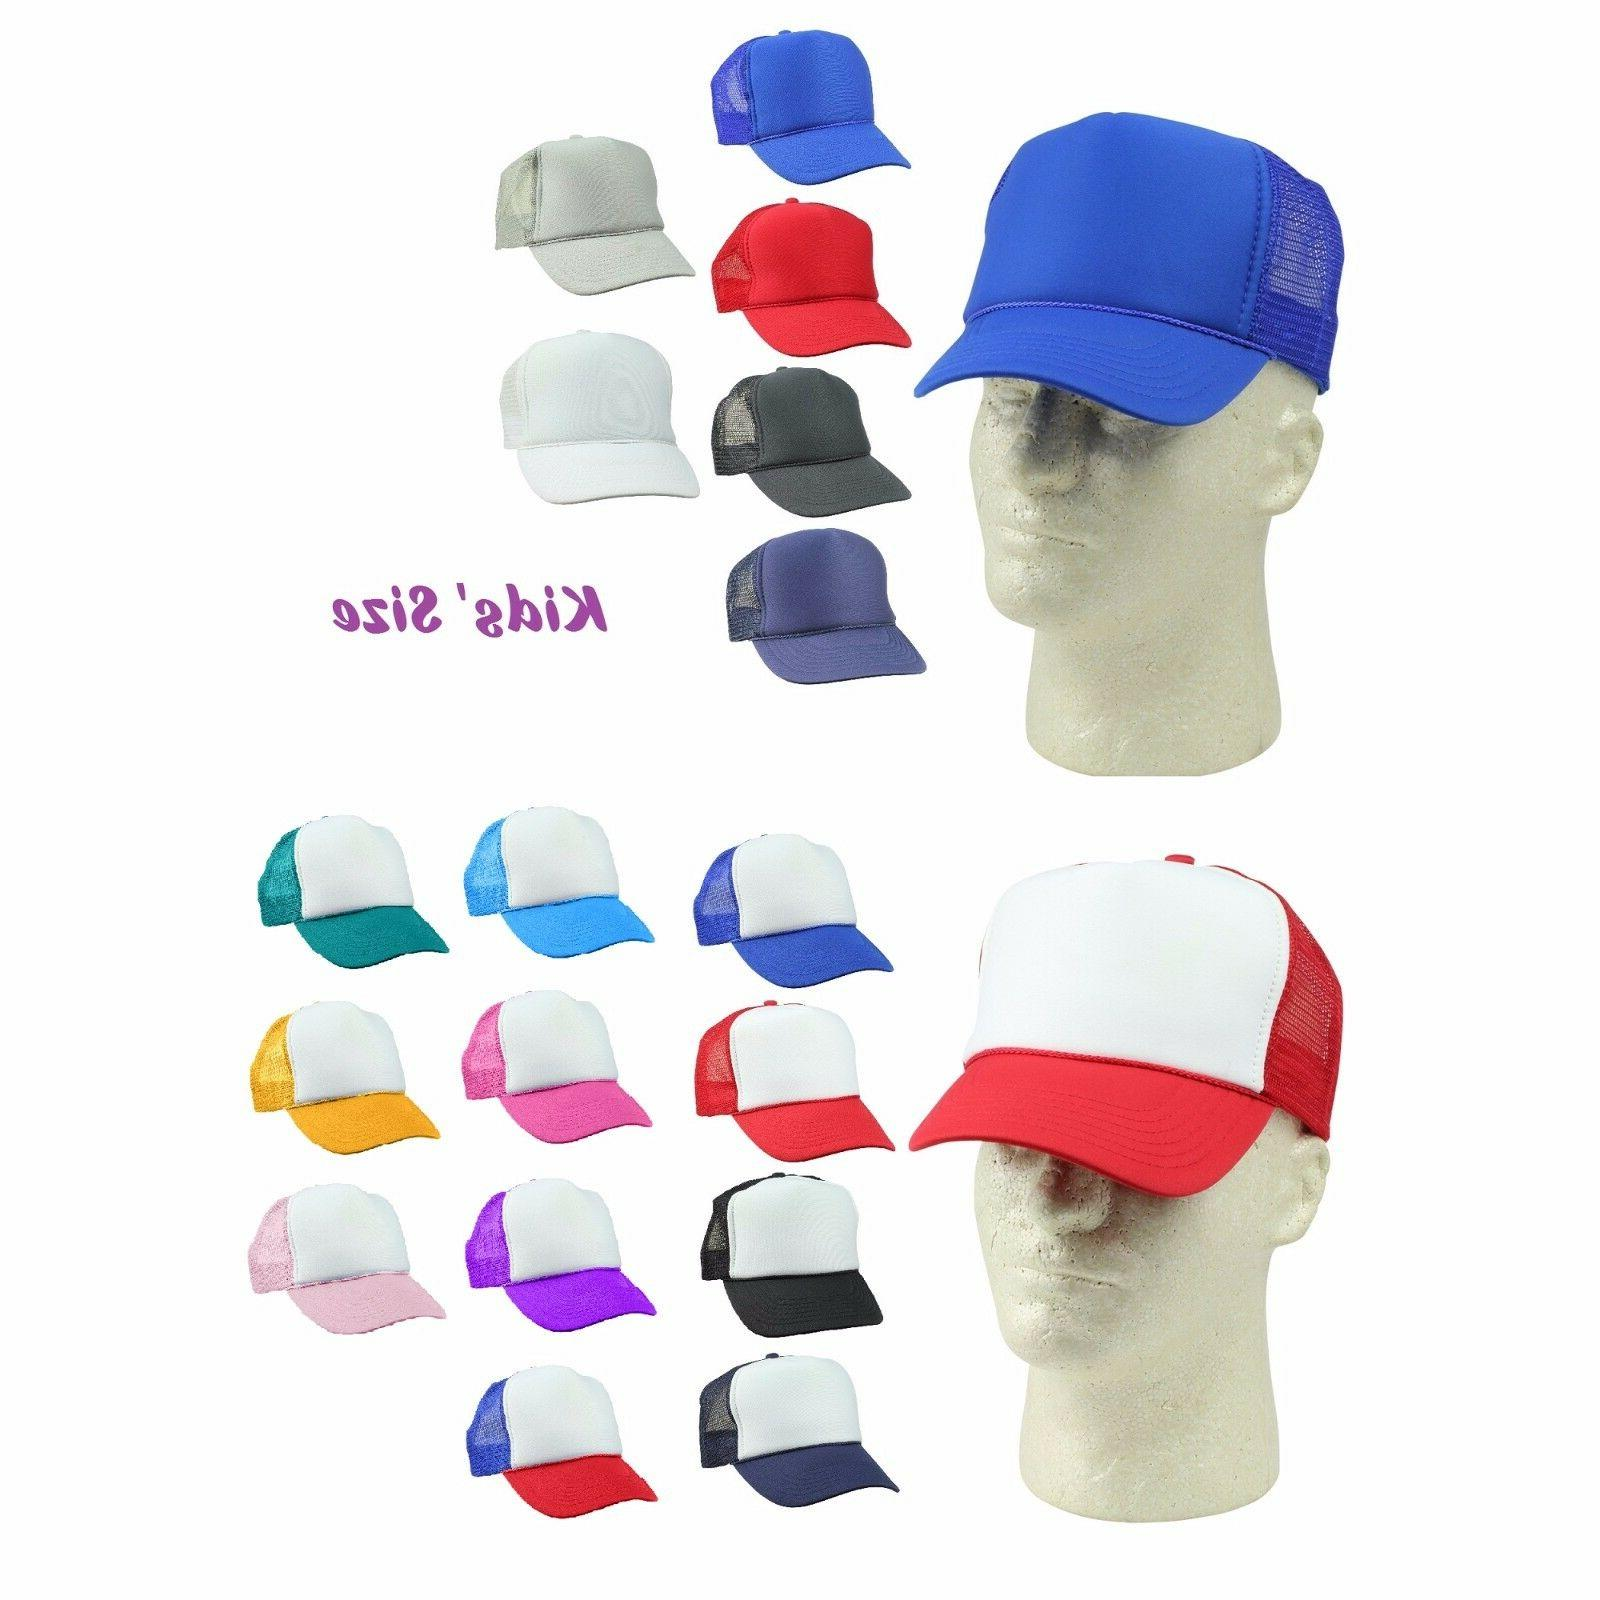 d7aa643c 1 DOZEN Blank Youth Trucker Hat Ball Cap Mesh Kids Red Blue